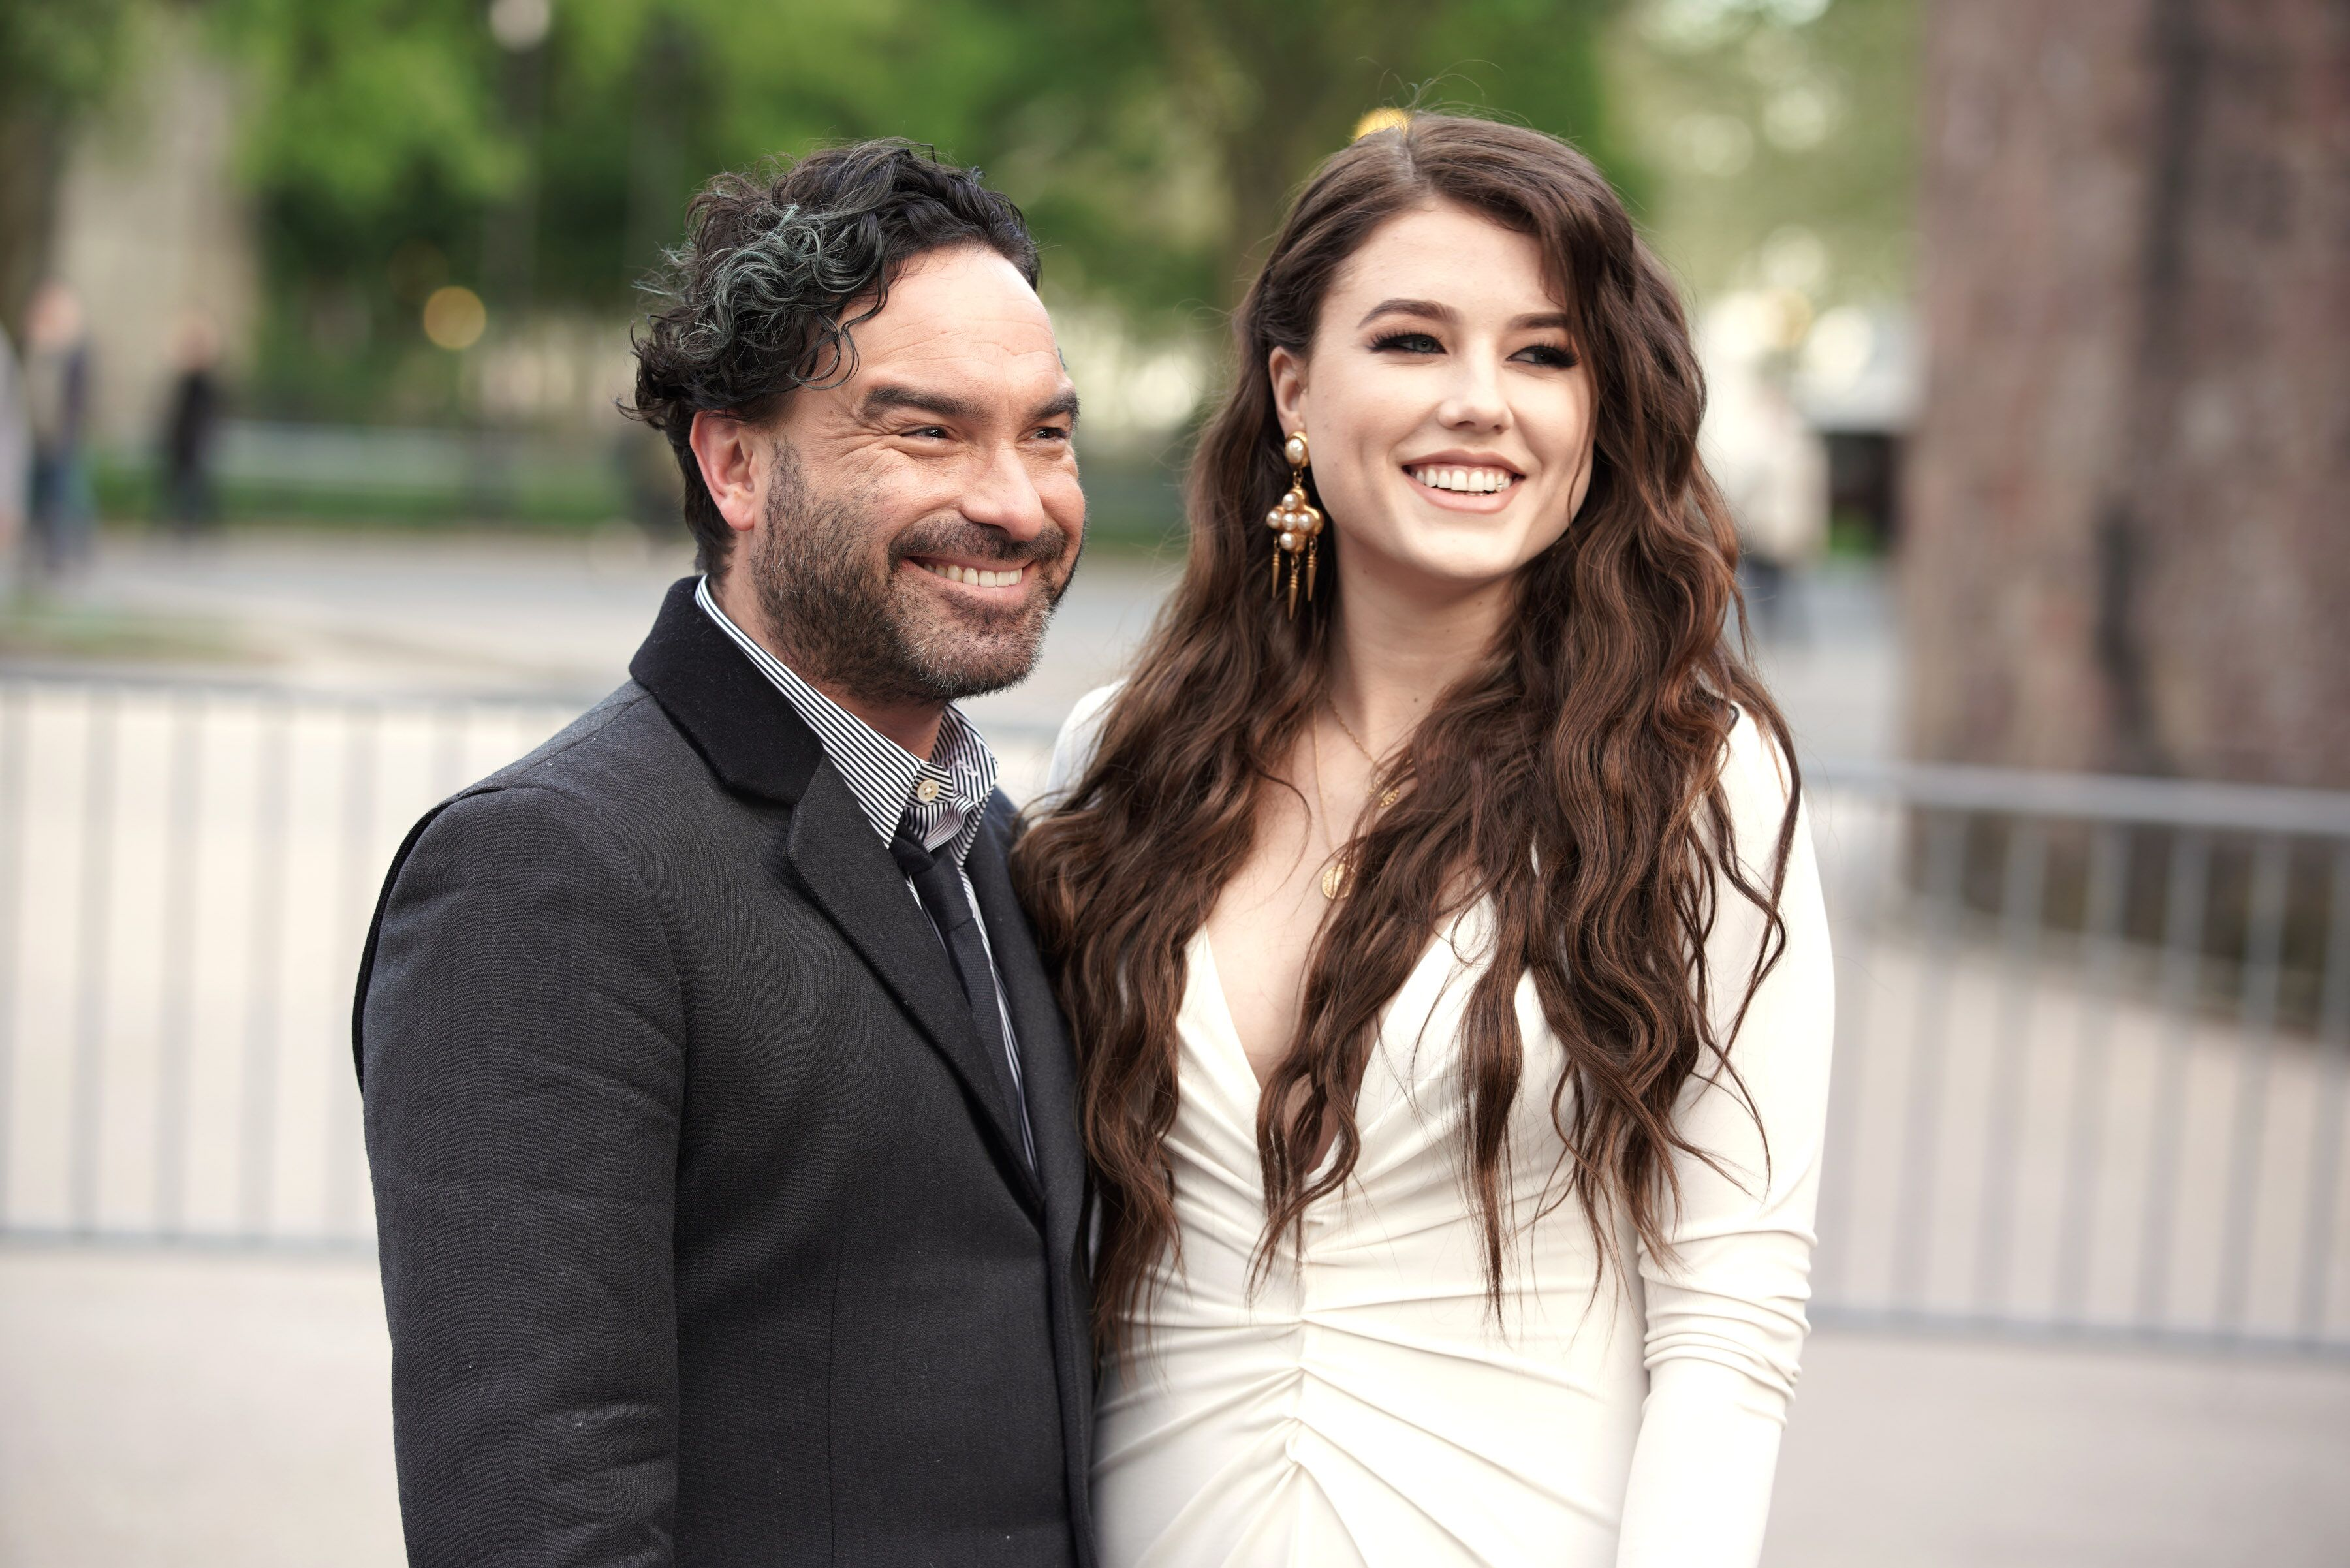 Johnny Galecki and Alaina Meyer arrive at the Statue Of Liberty Museum Opening Celebration at Battery Park on May 15, 2019 in New York City. | Source: Getty Images